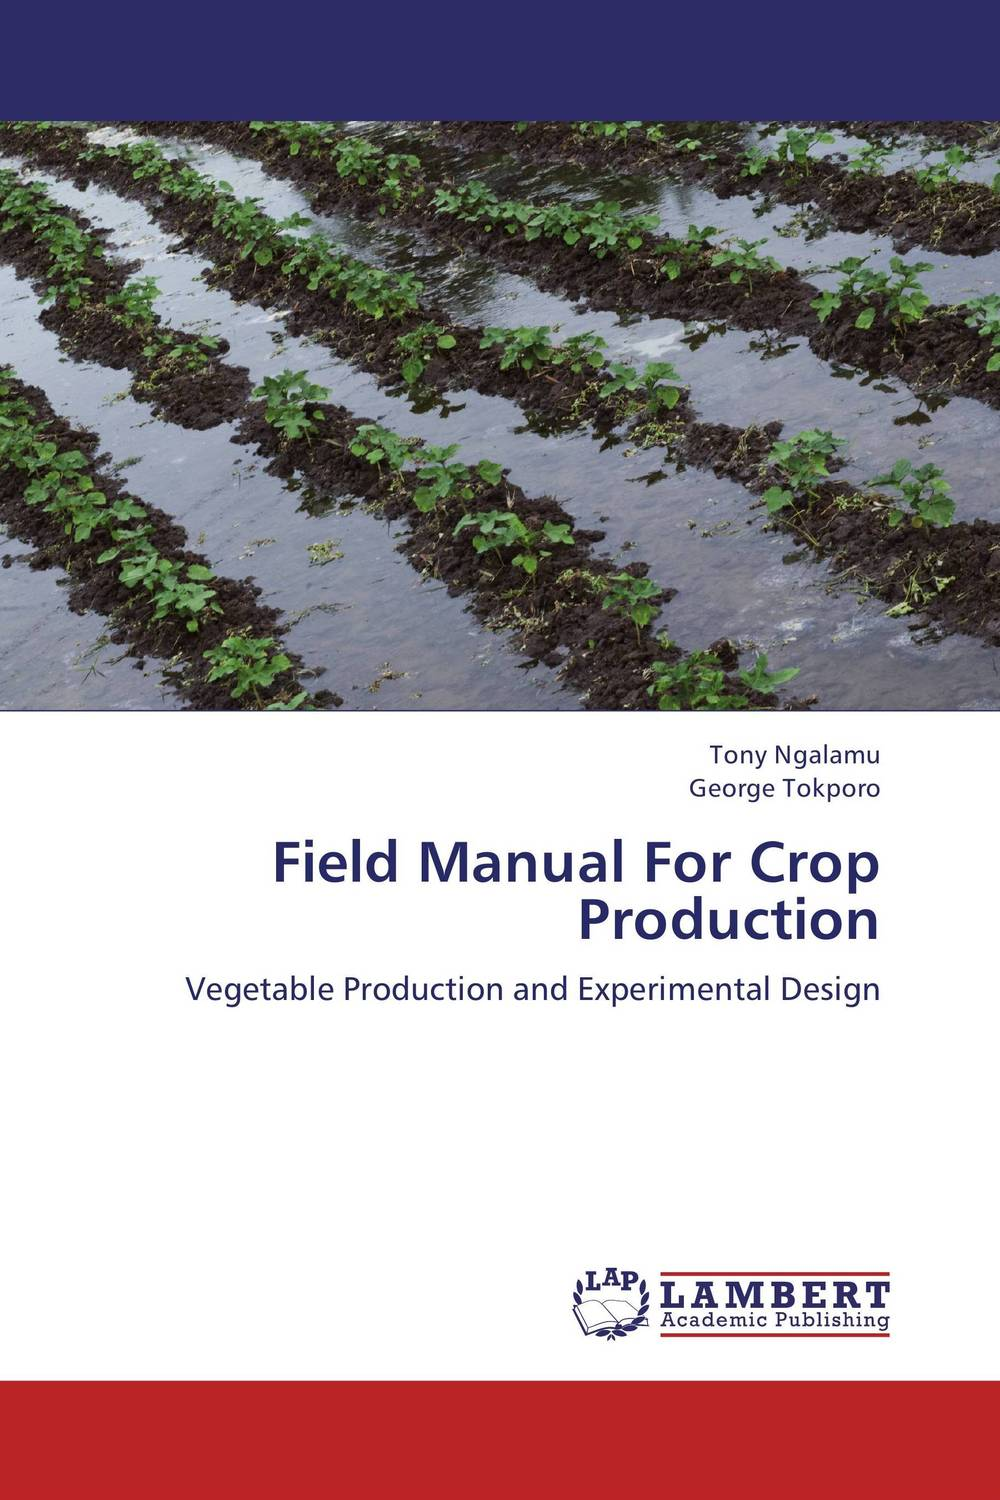 Field Manual For Crop Production